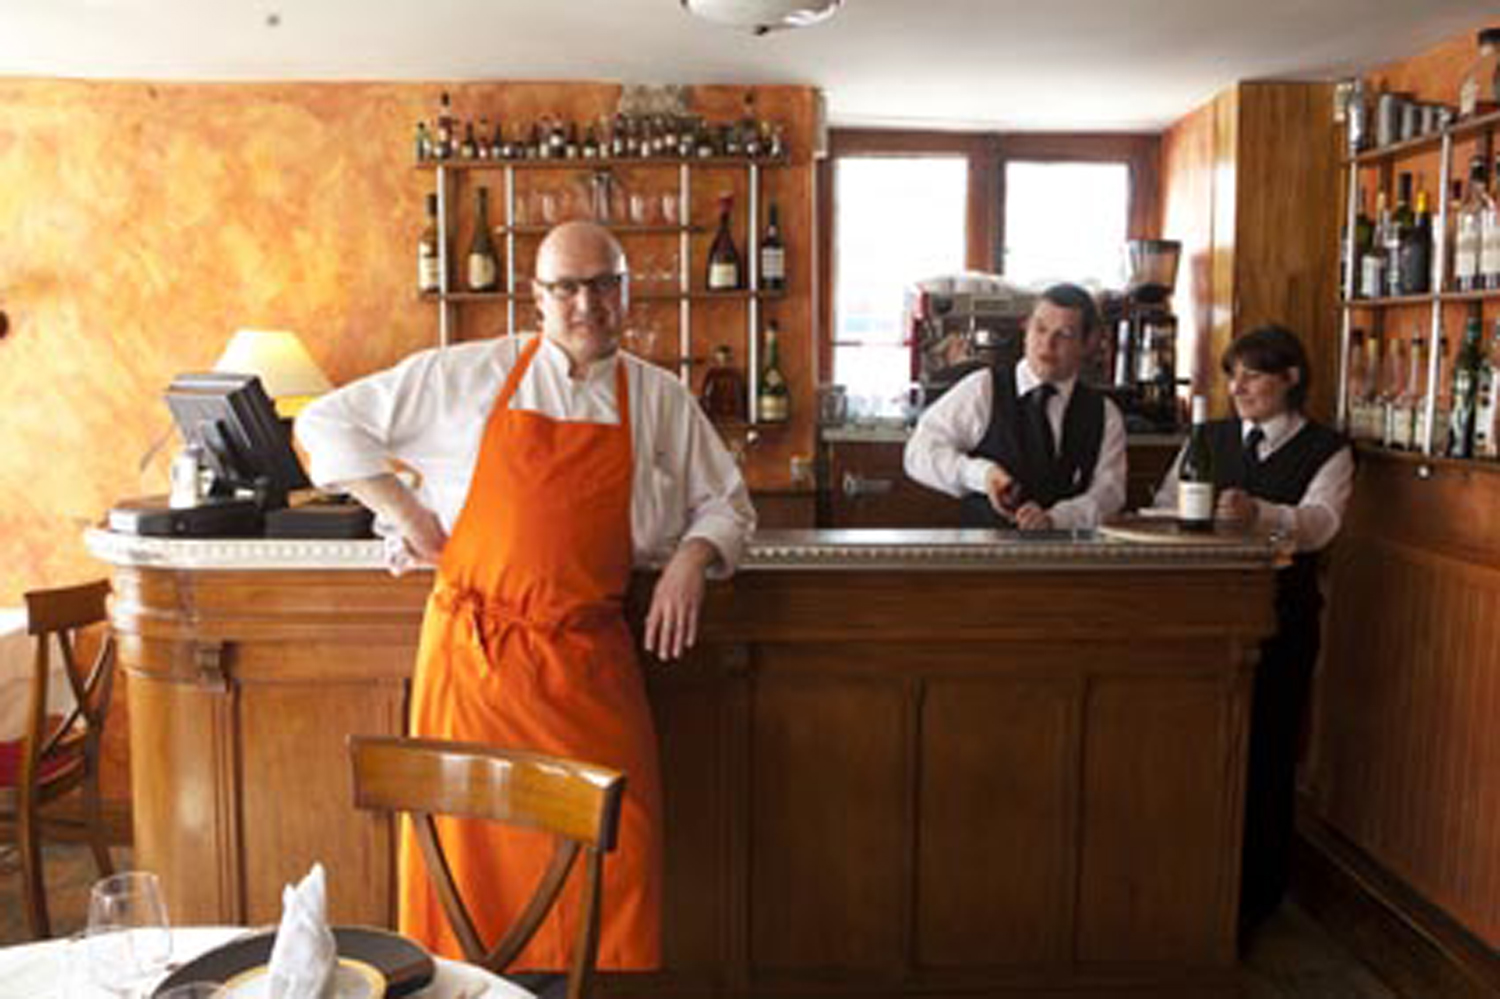 I borrowed this photo from  Gilles   Pudlowski , who wrote his own blog post about the restaurant